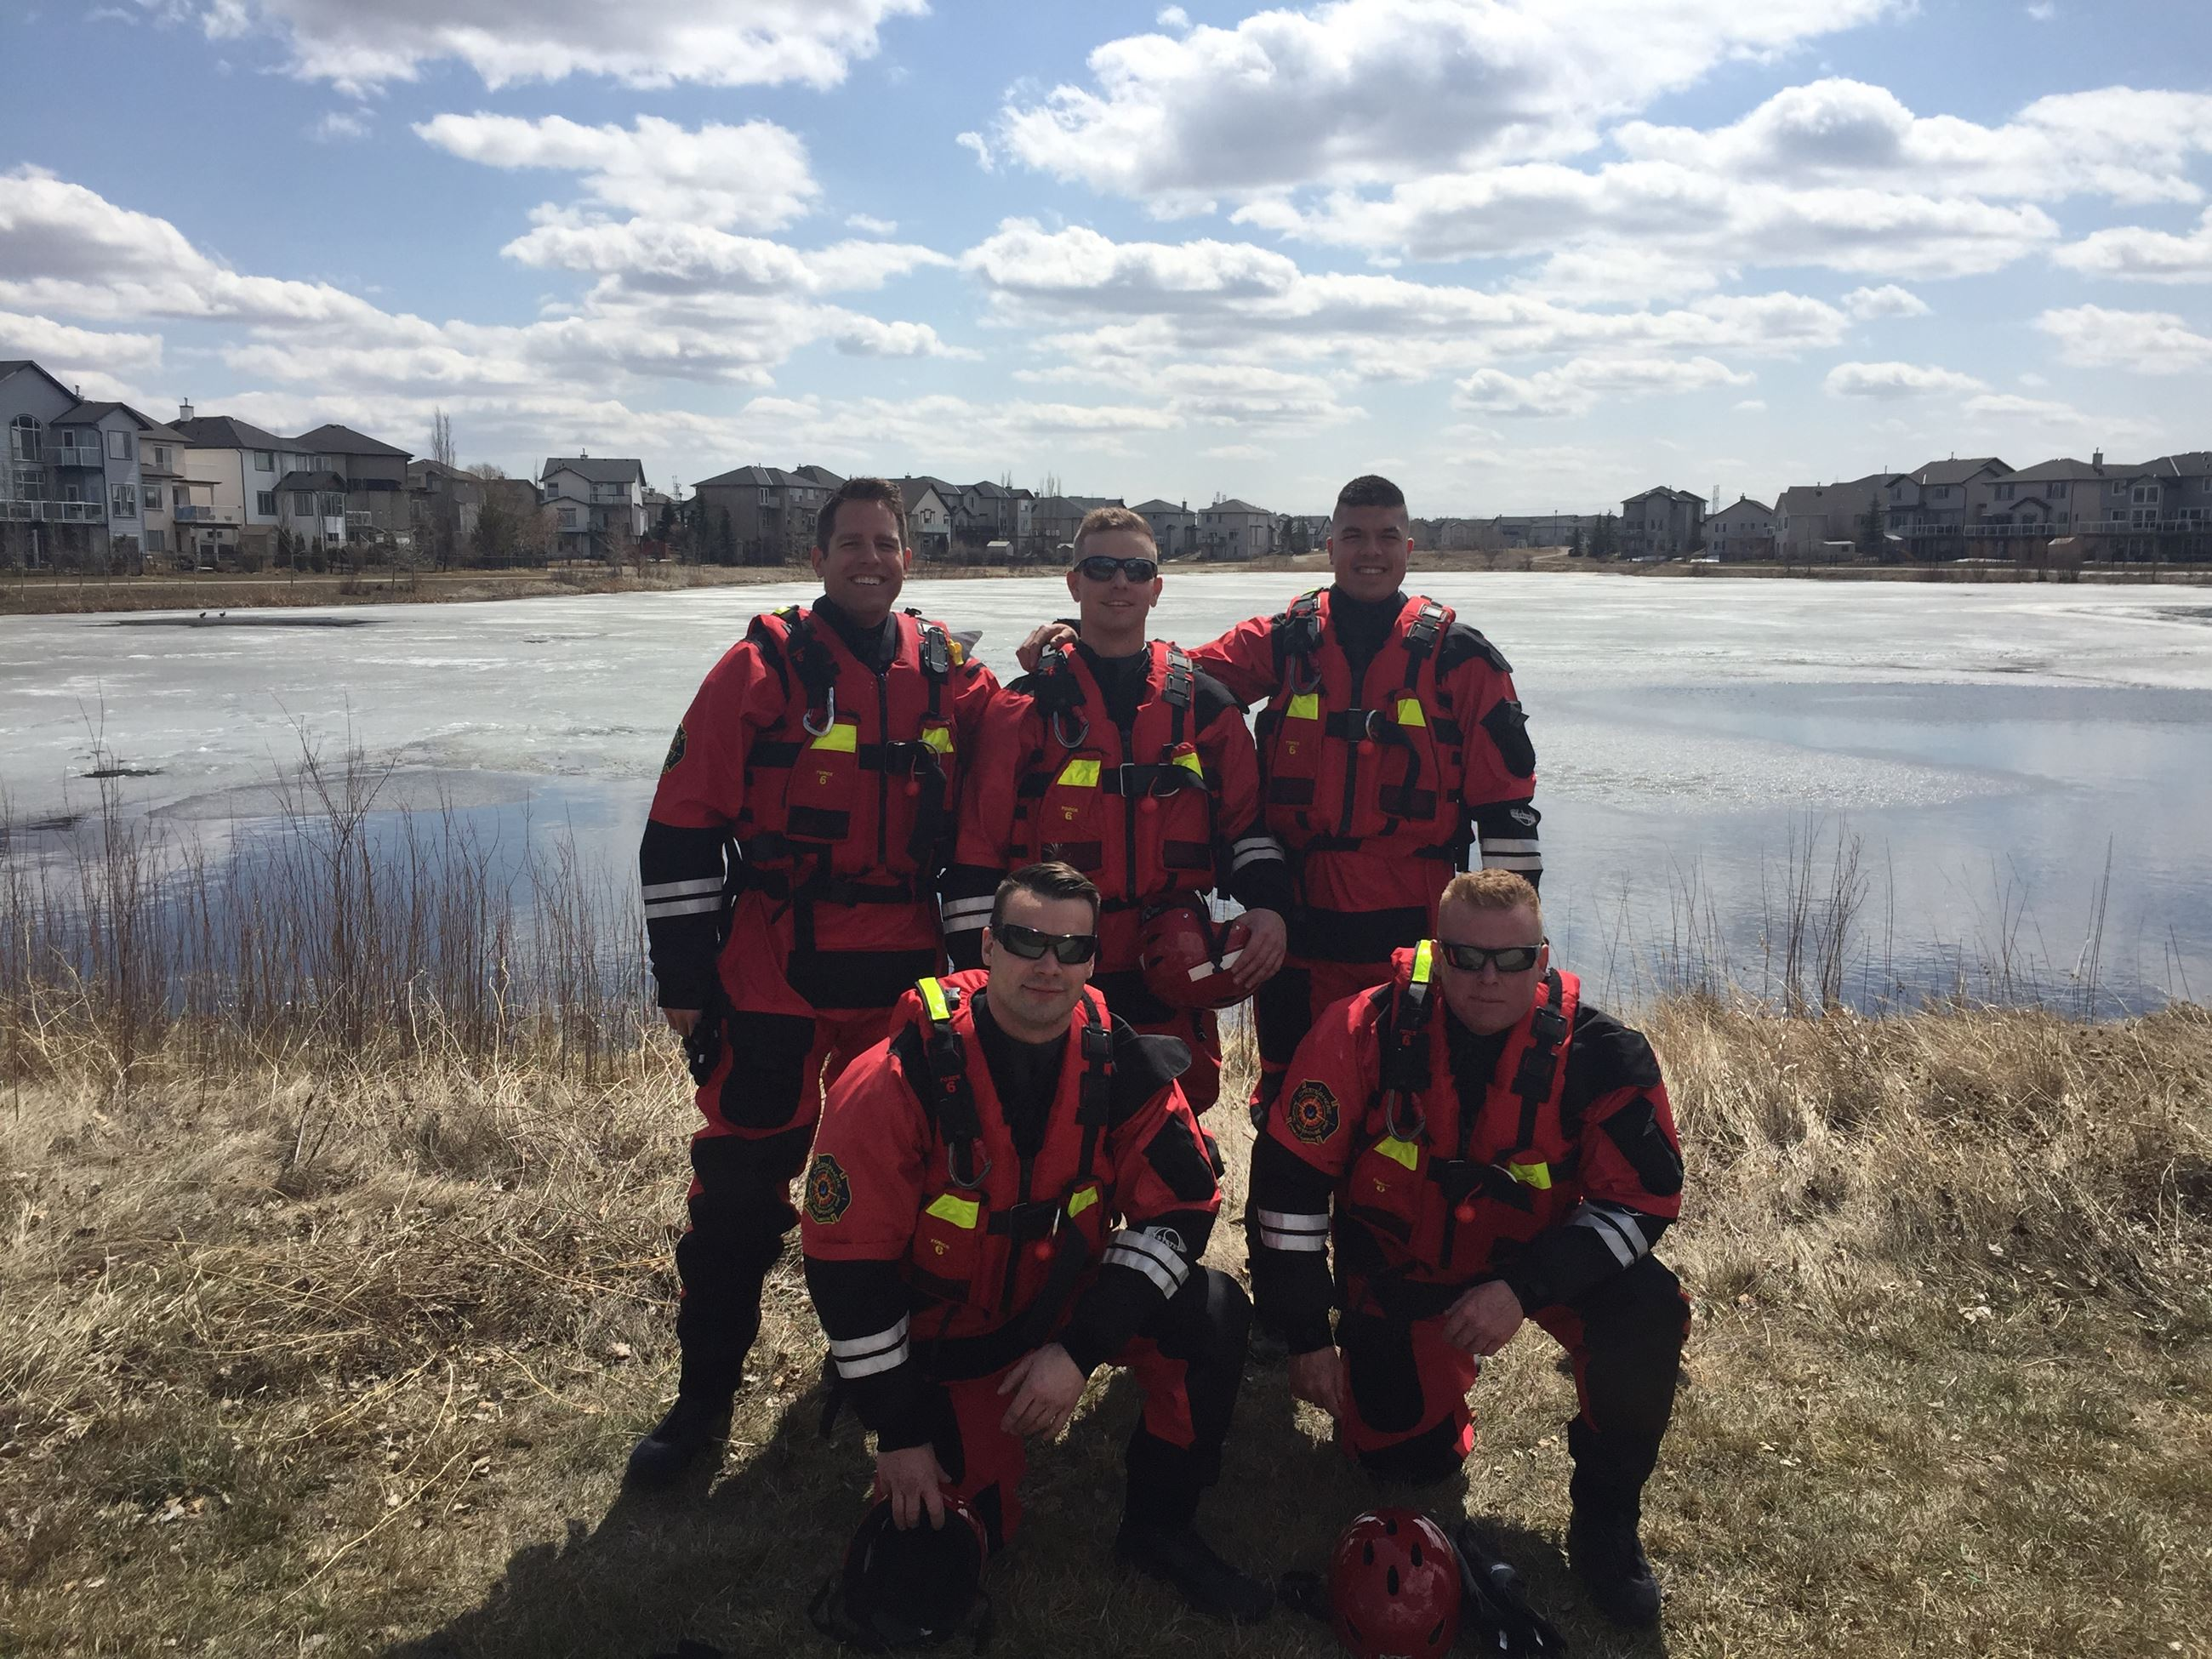 Chestermere Fire Services C Shift